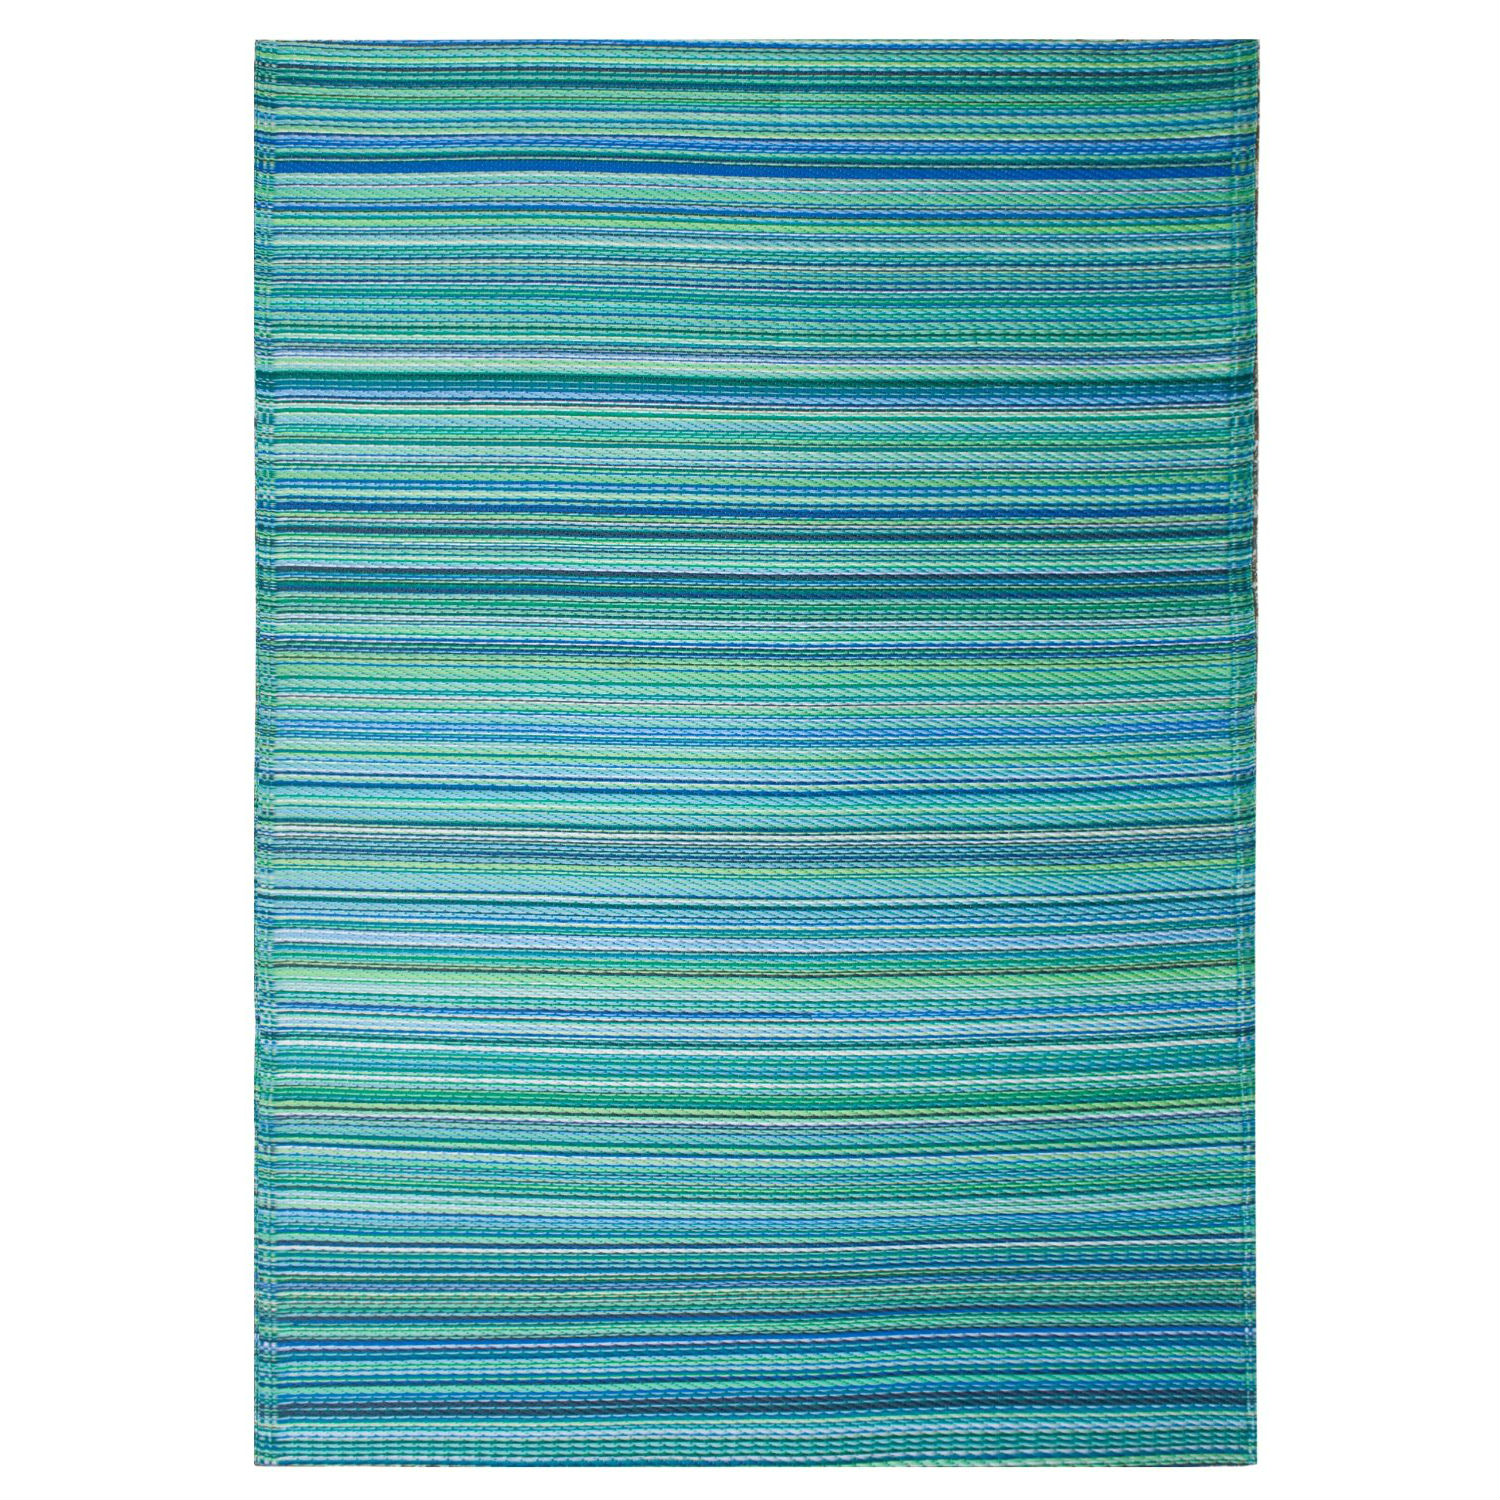 Outdoor Rug Mediterranean Colors Turquoise & Moss Green